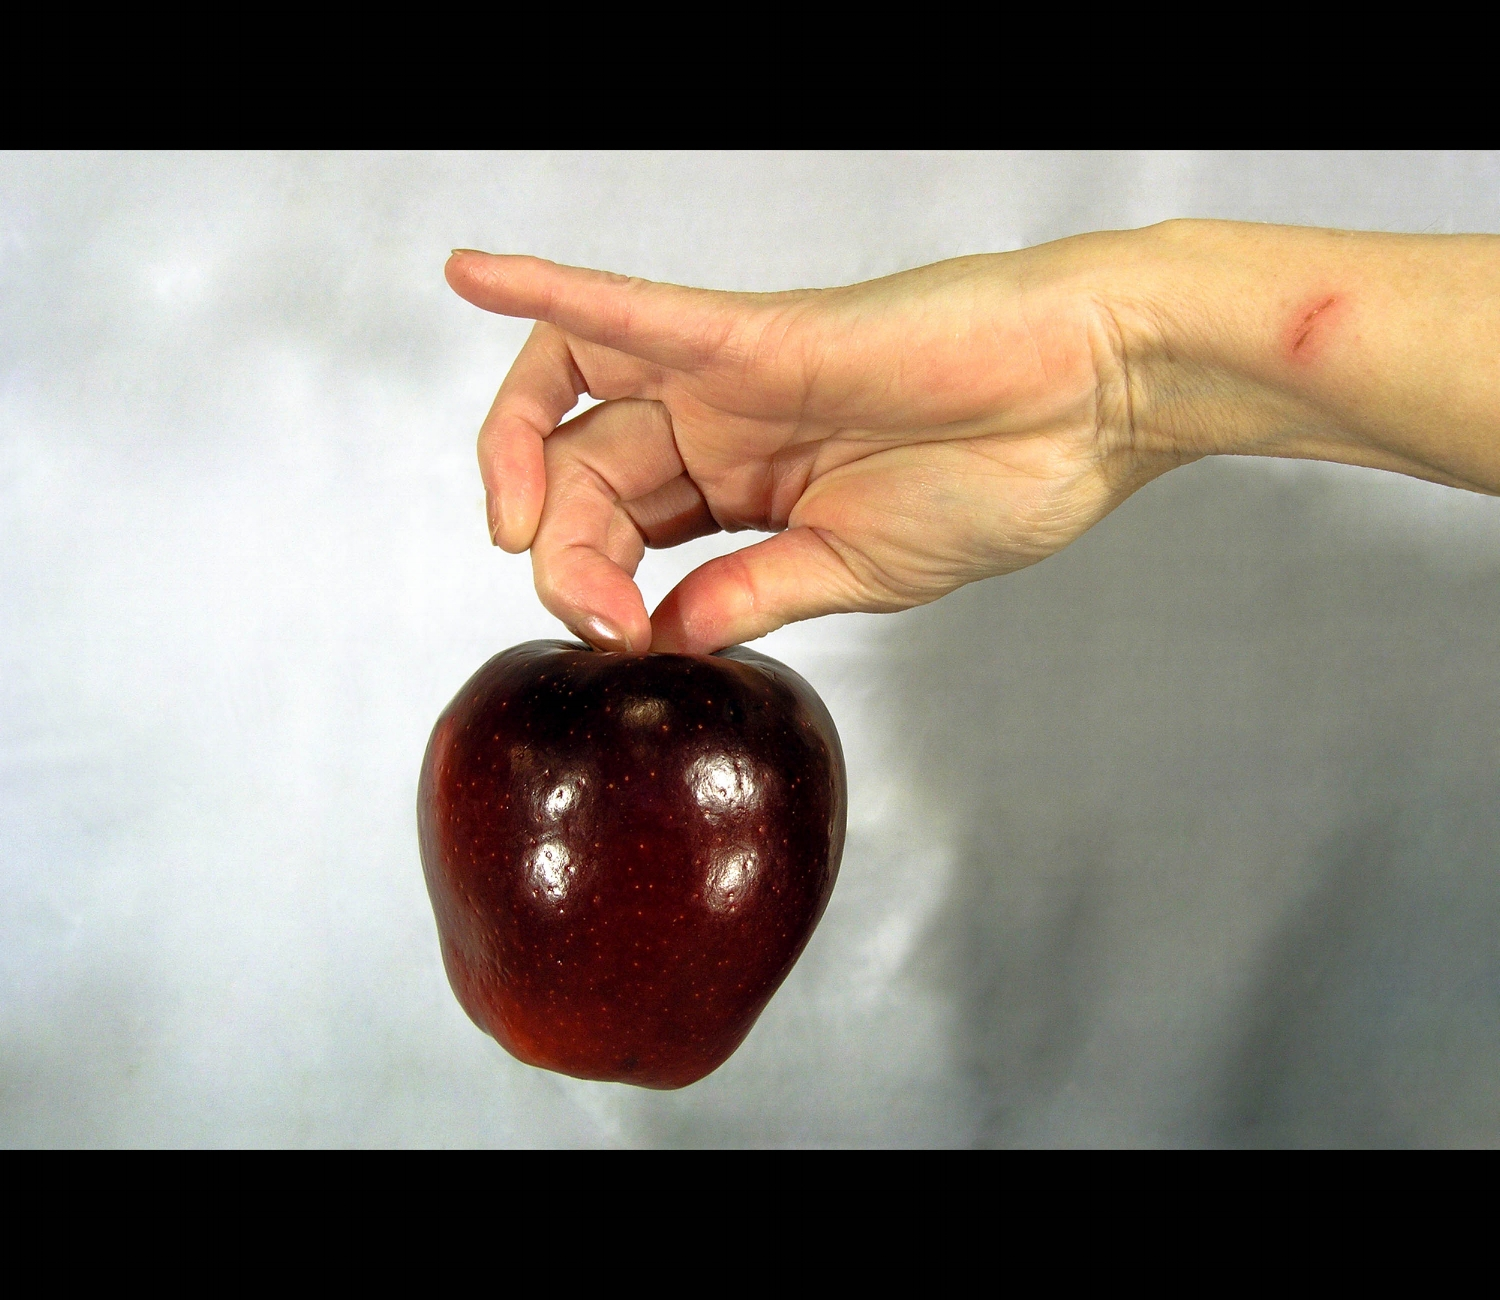 Apple Hand-web.jpg